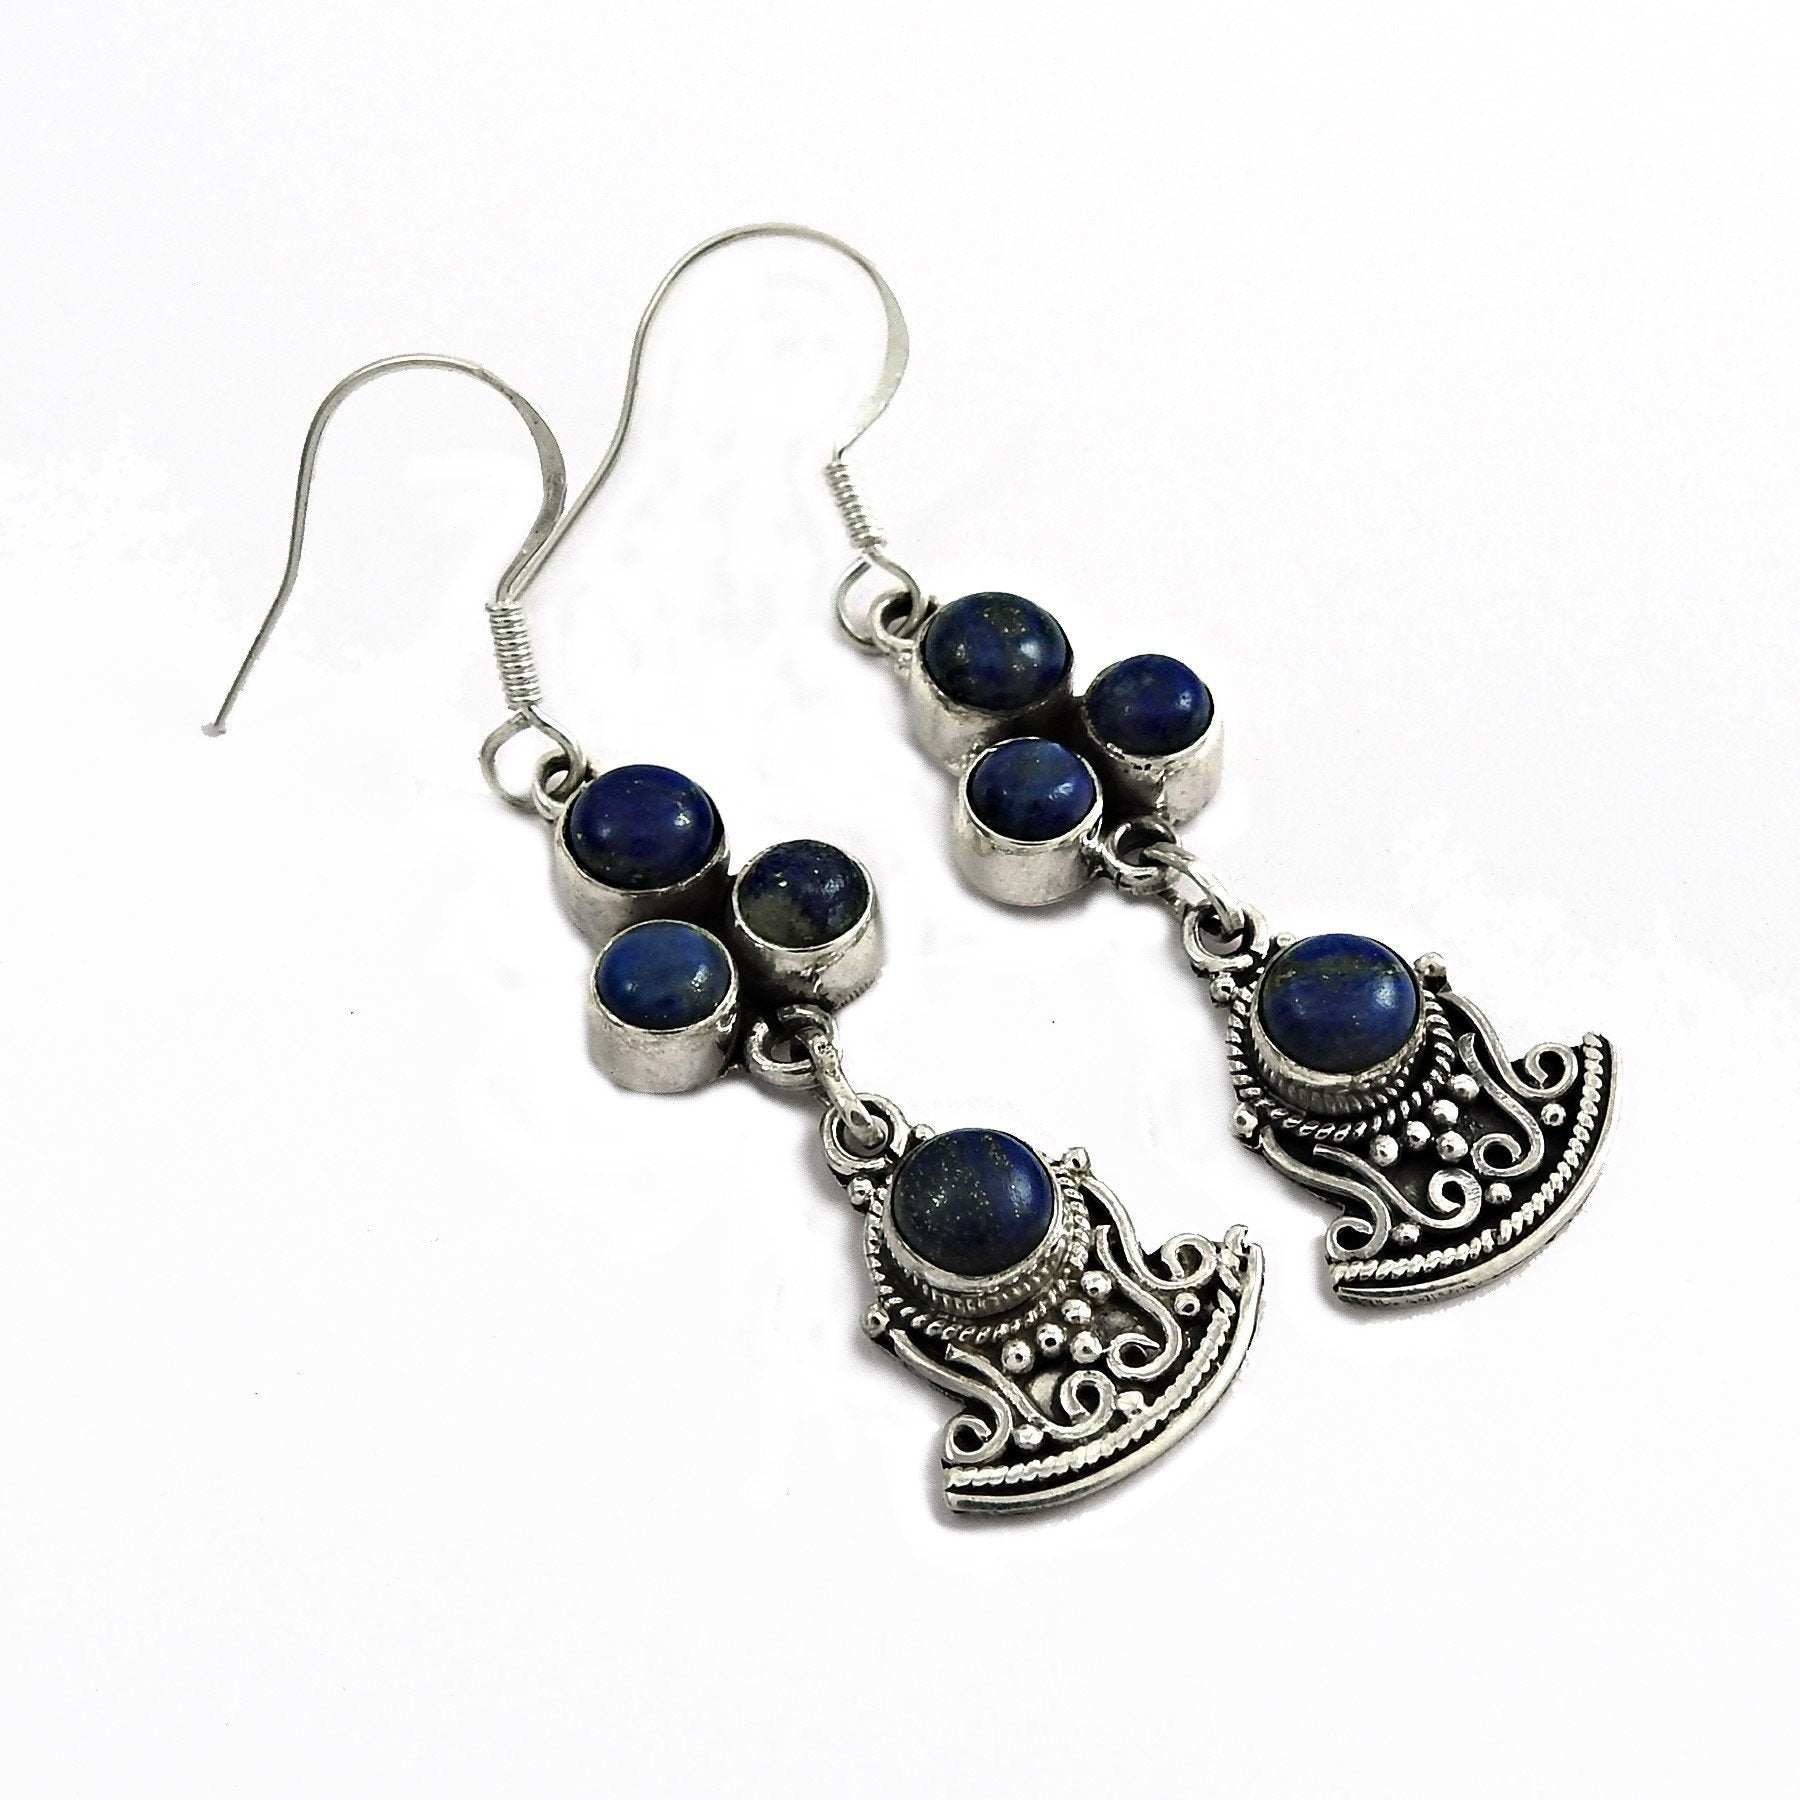 Authentic Lapis lazuli Gemstone 925 Sterling Silver Earring